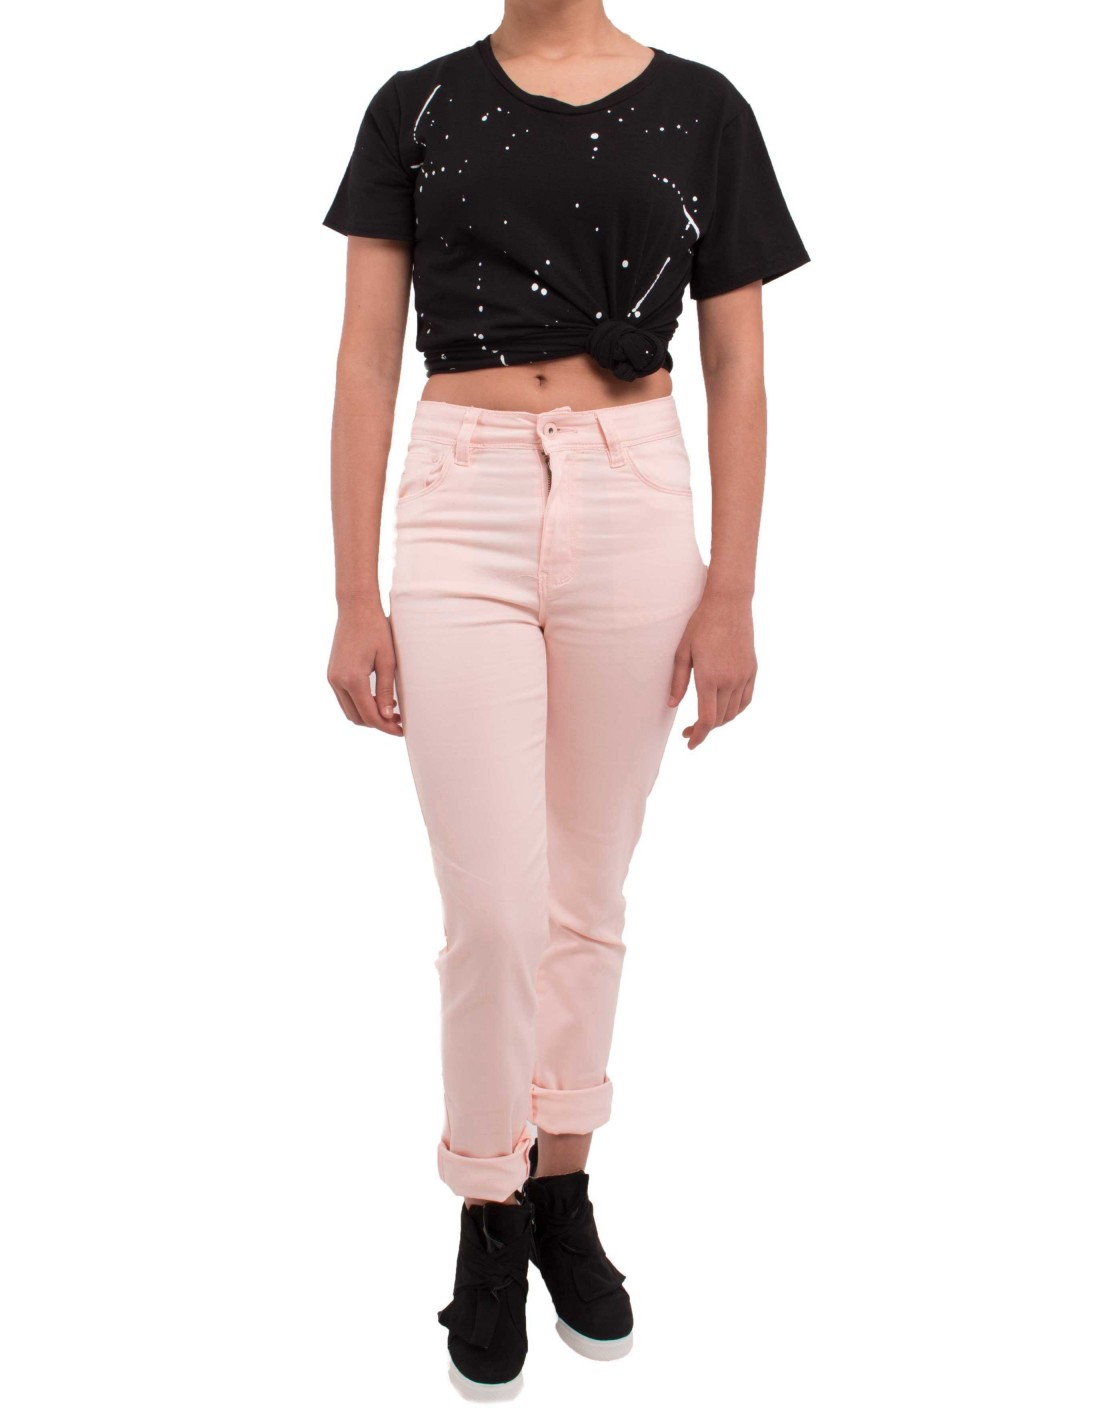 Jean rose clair coupe droite taille haute type jean - Jean coupe droite taille haute femme ...